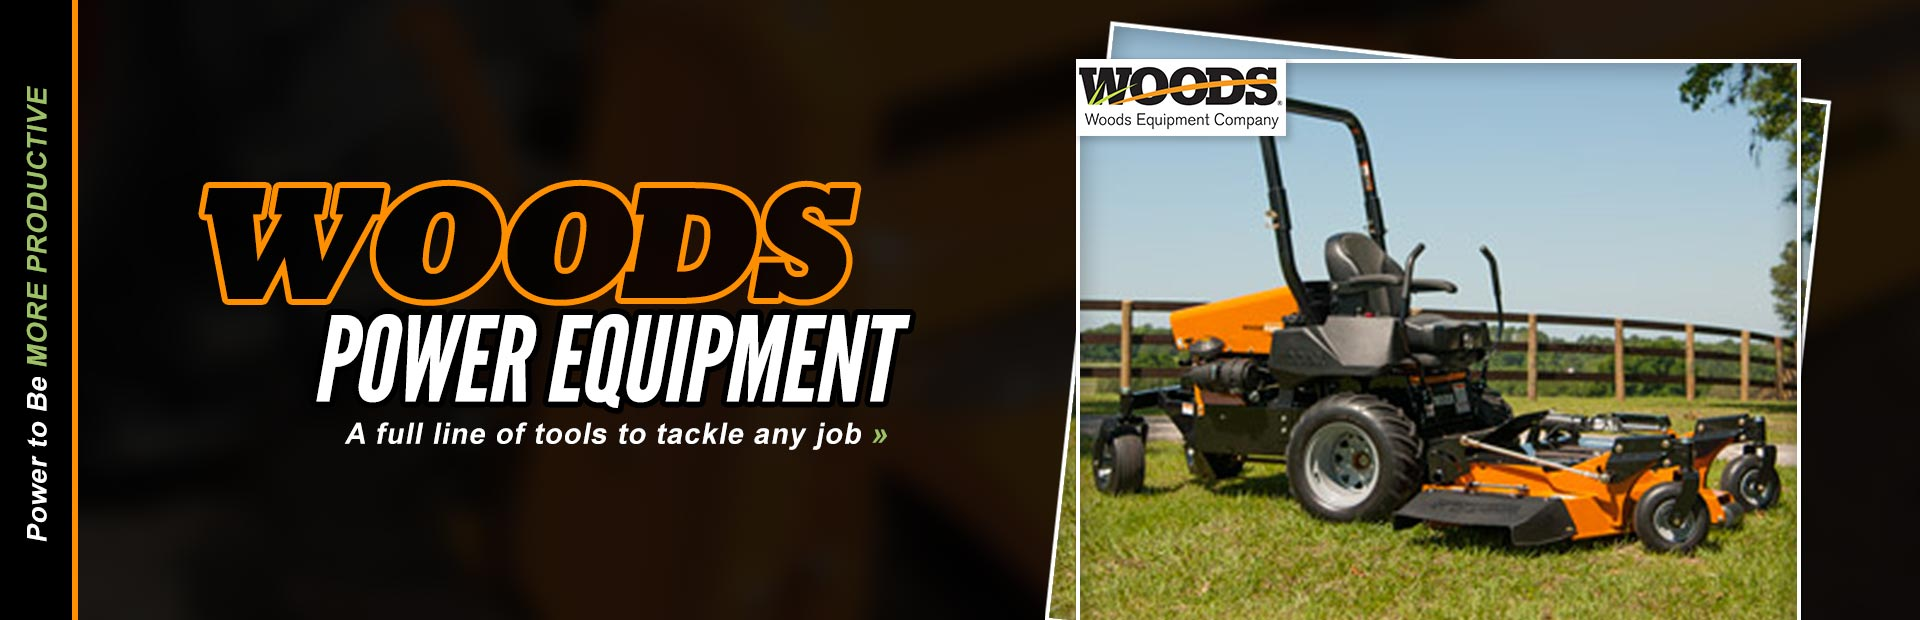 We carry a full line of Woods equipment to tackle any job.